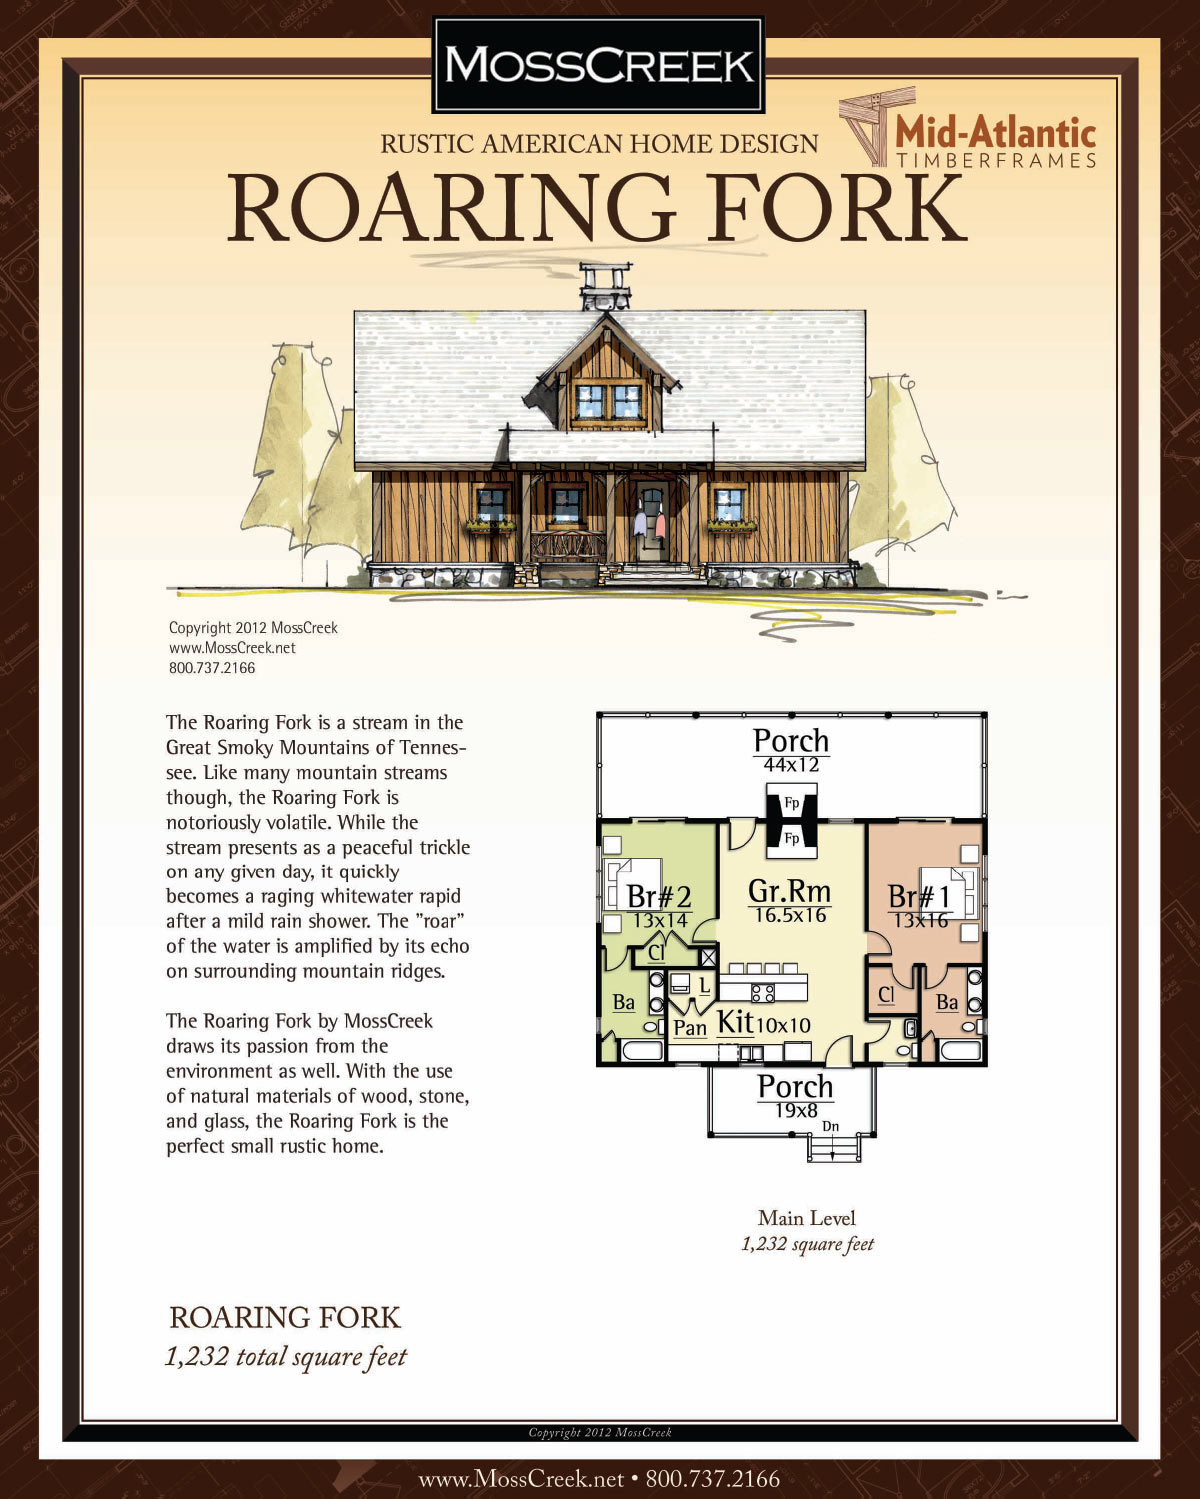 Roaring Fork Timber Frame Home Plans